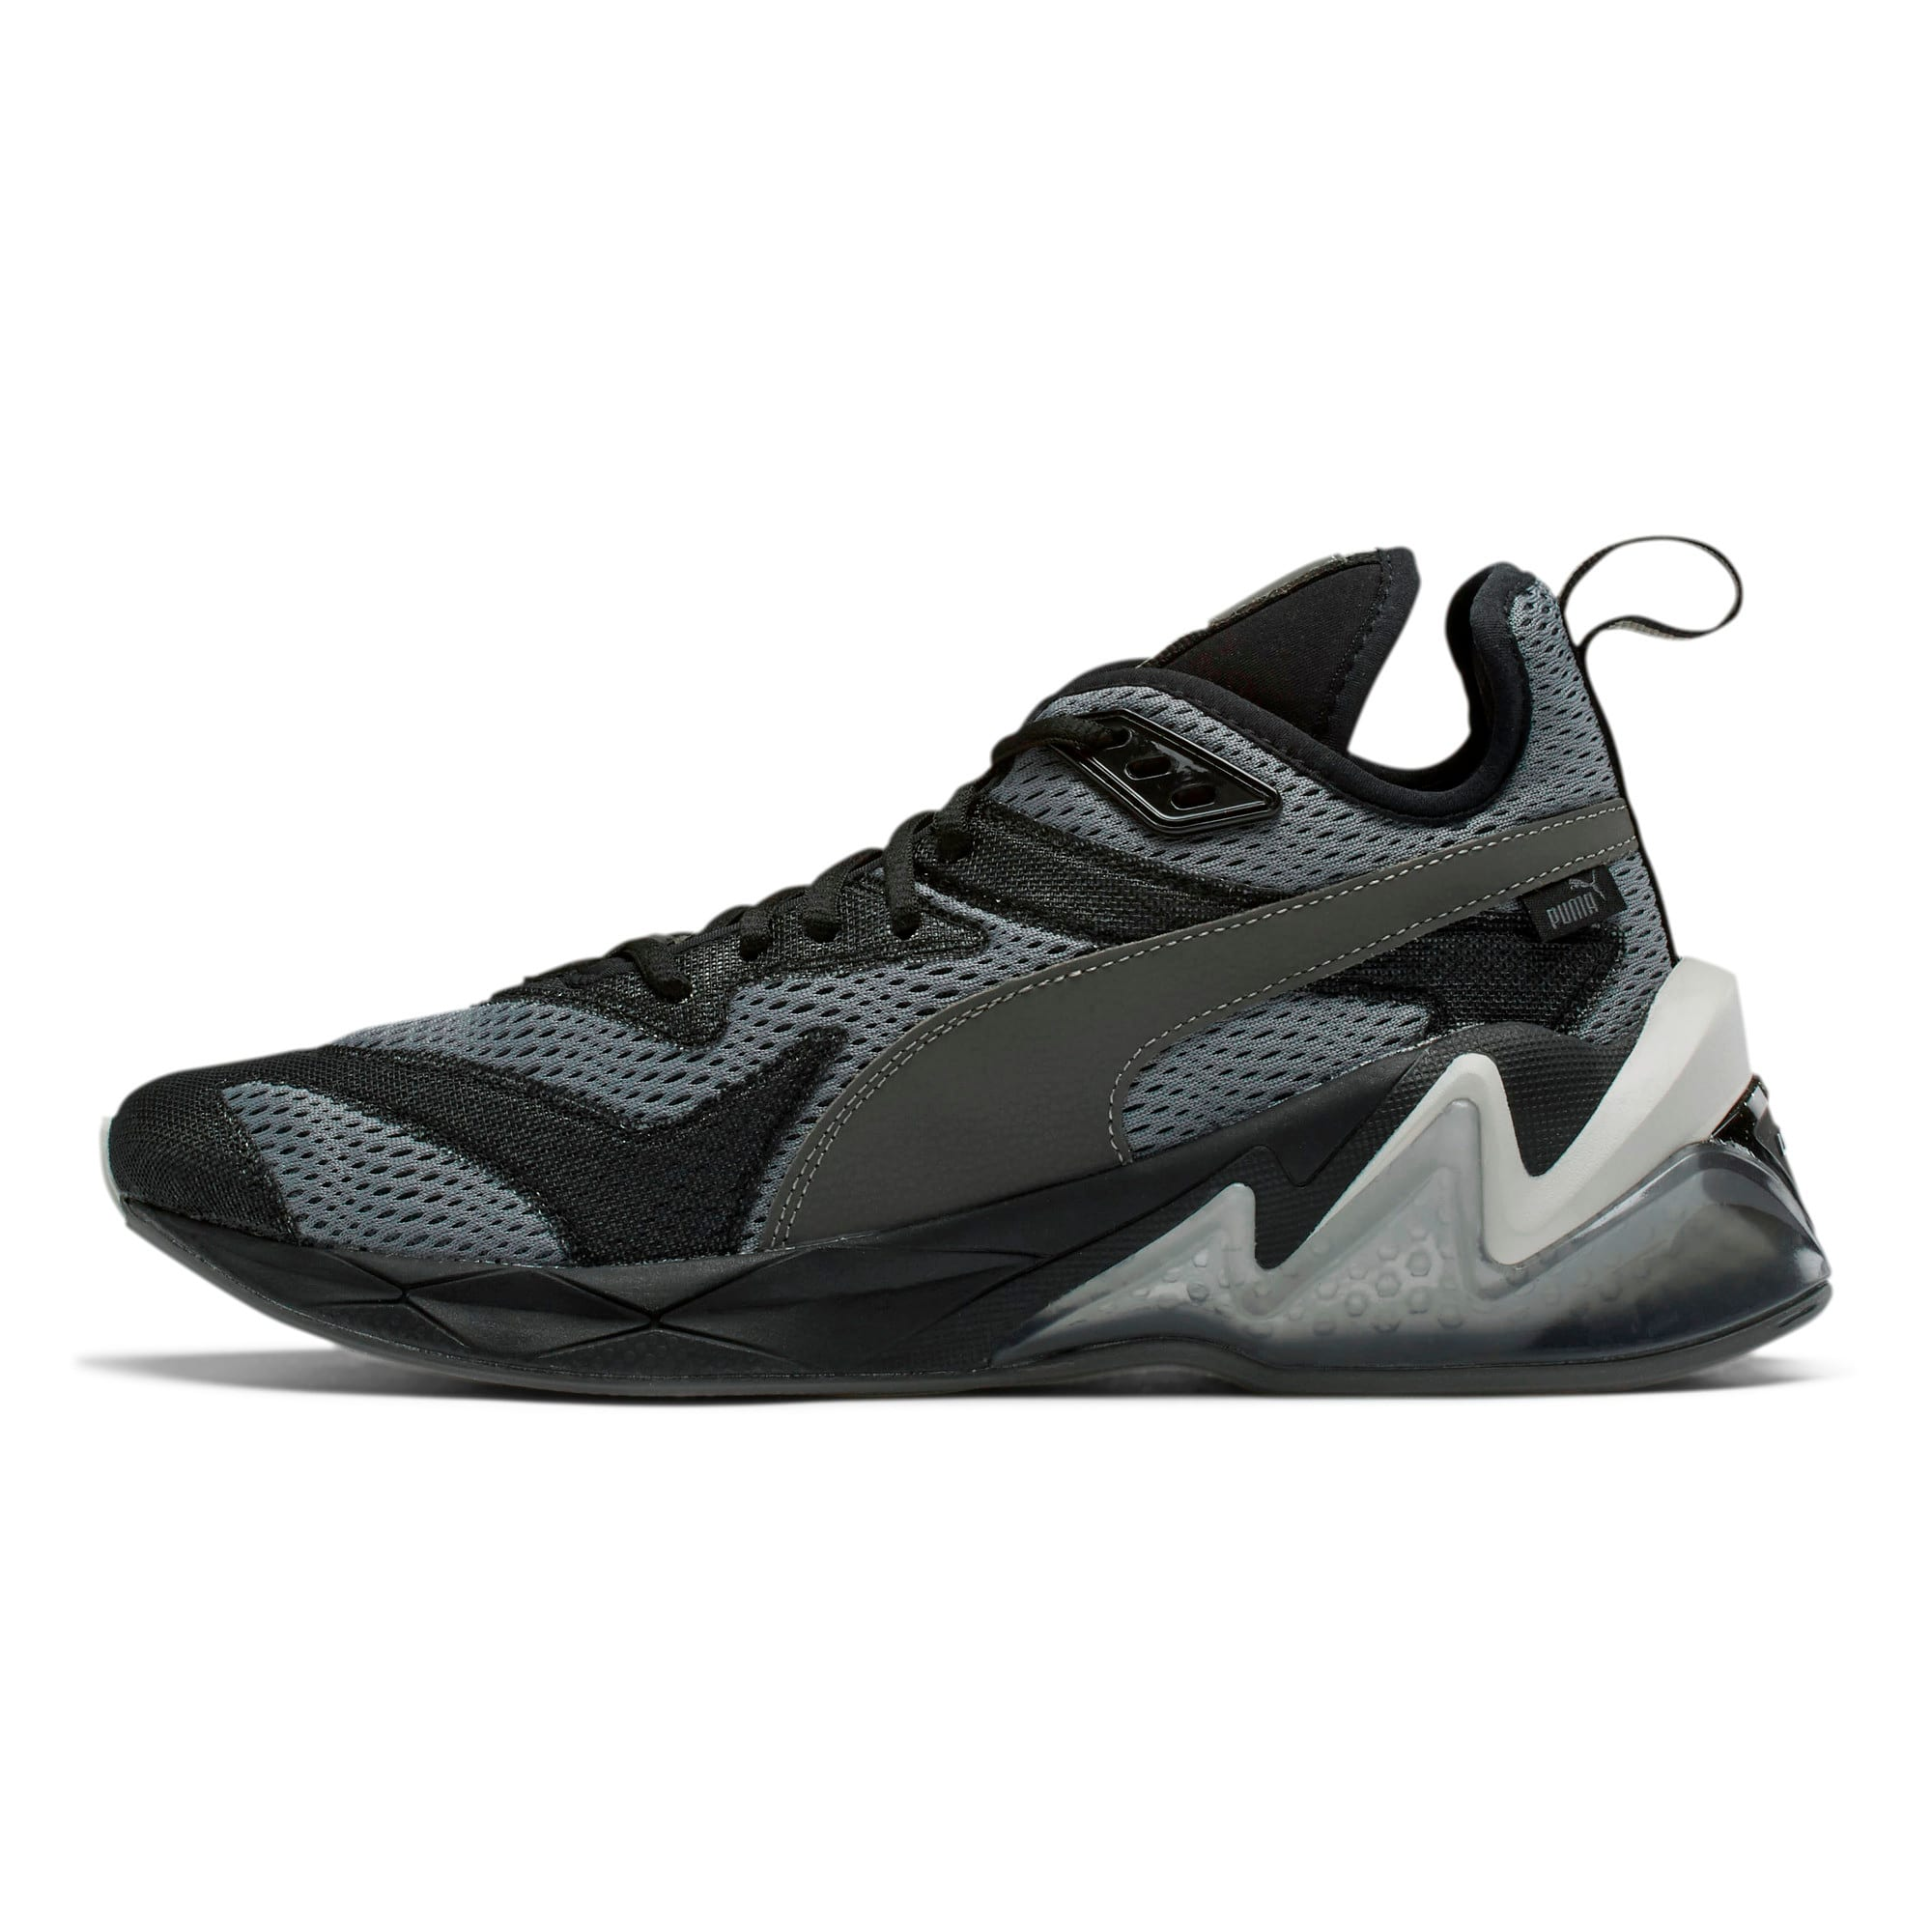 Thumbnail 1 of LQDCELL Origin Tech Men's Training Shoes, Puma Black-CASTLEROCK, medium